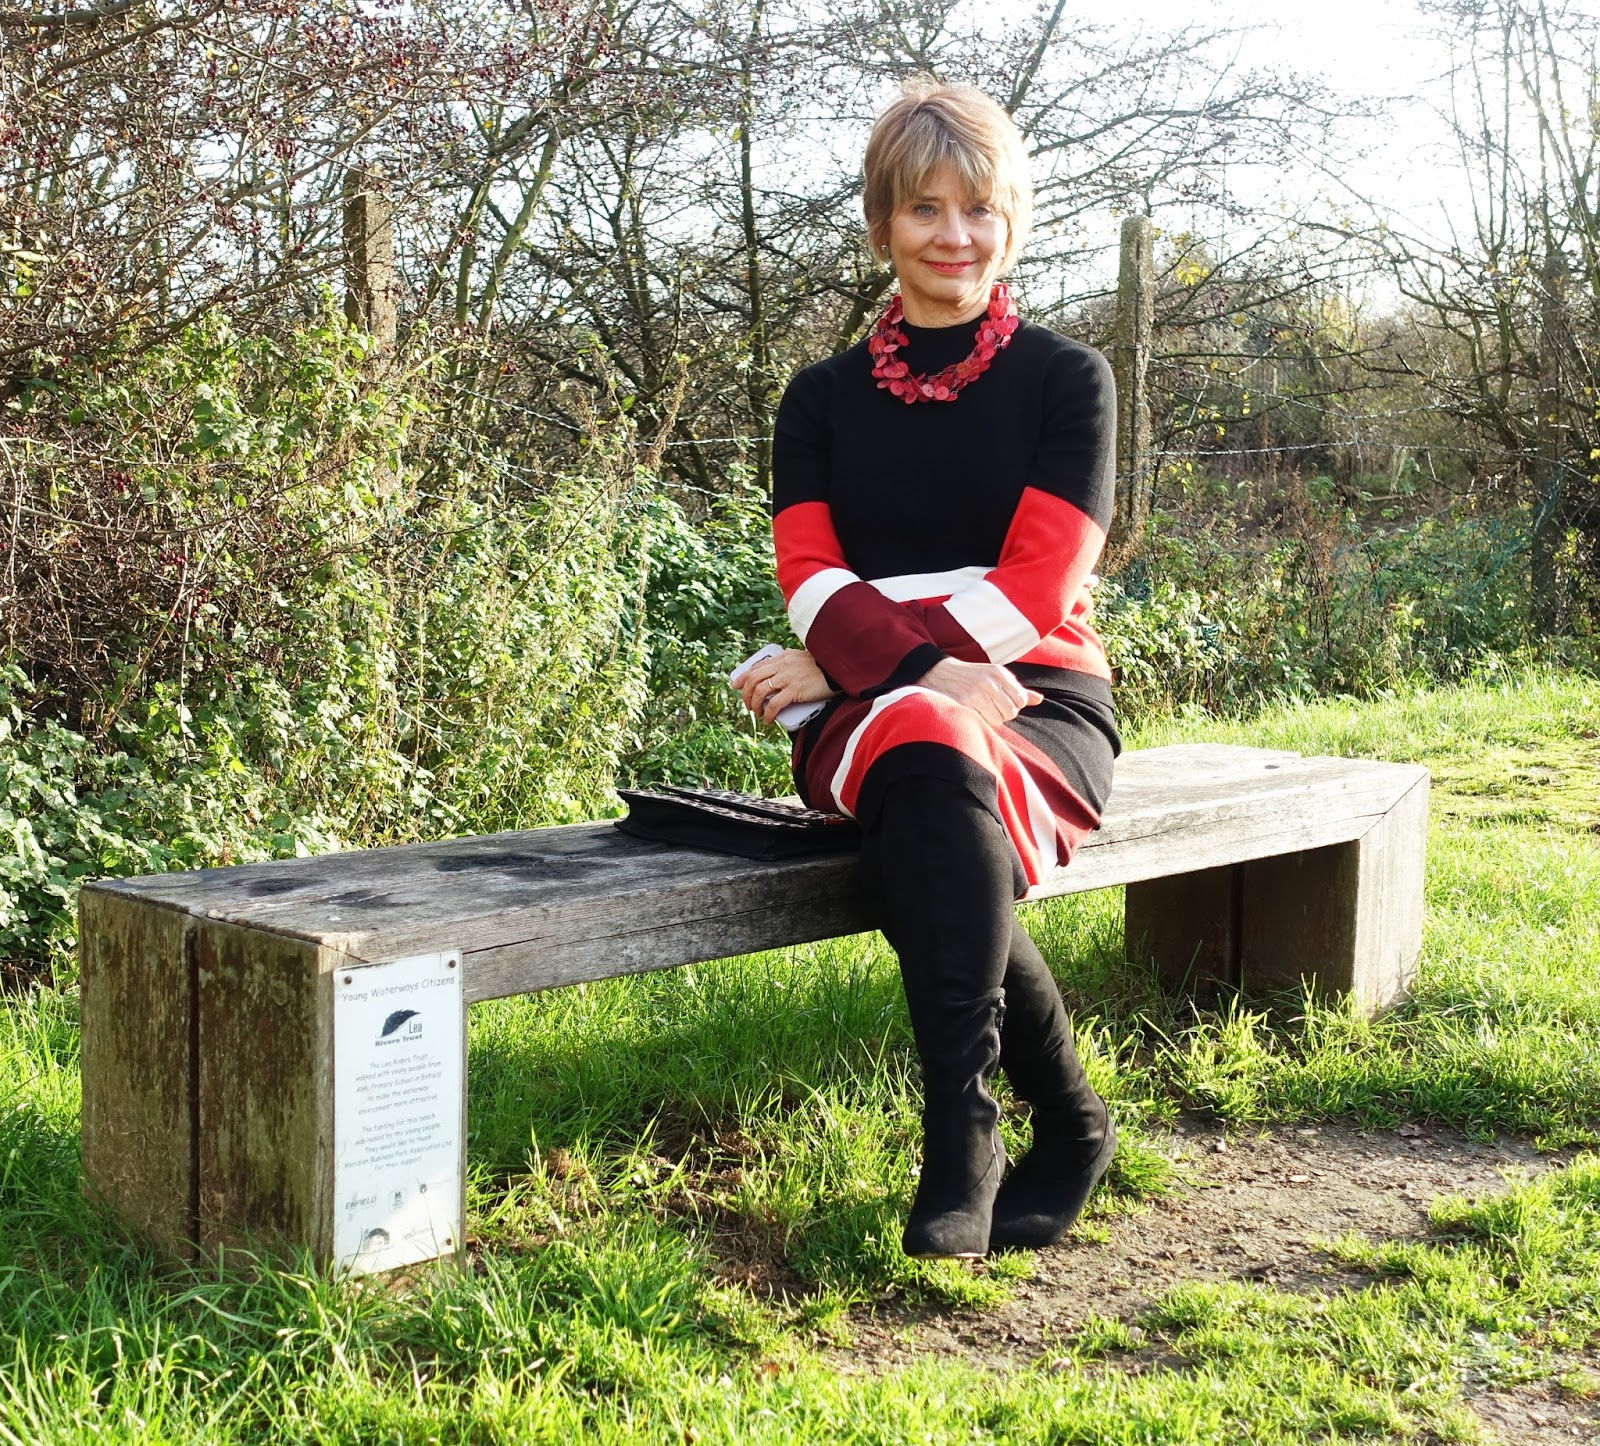 Image showing woman over 50 seated on a bench overlooking a canal wearing a colour block wool two piece outfit and over the knee boots